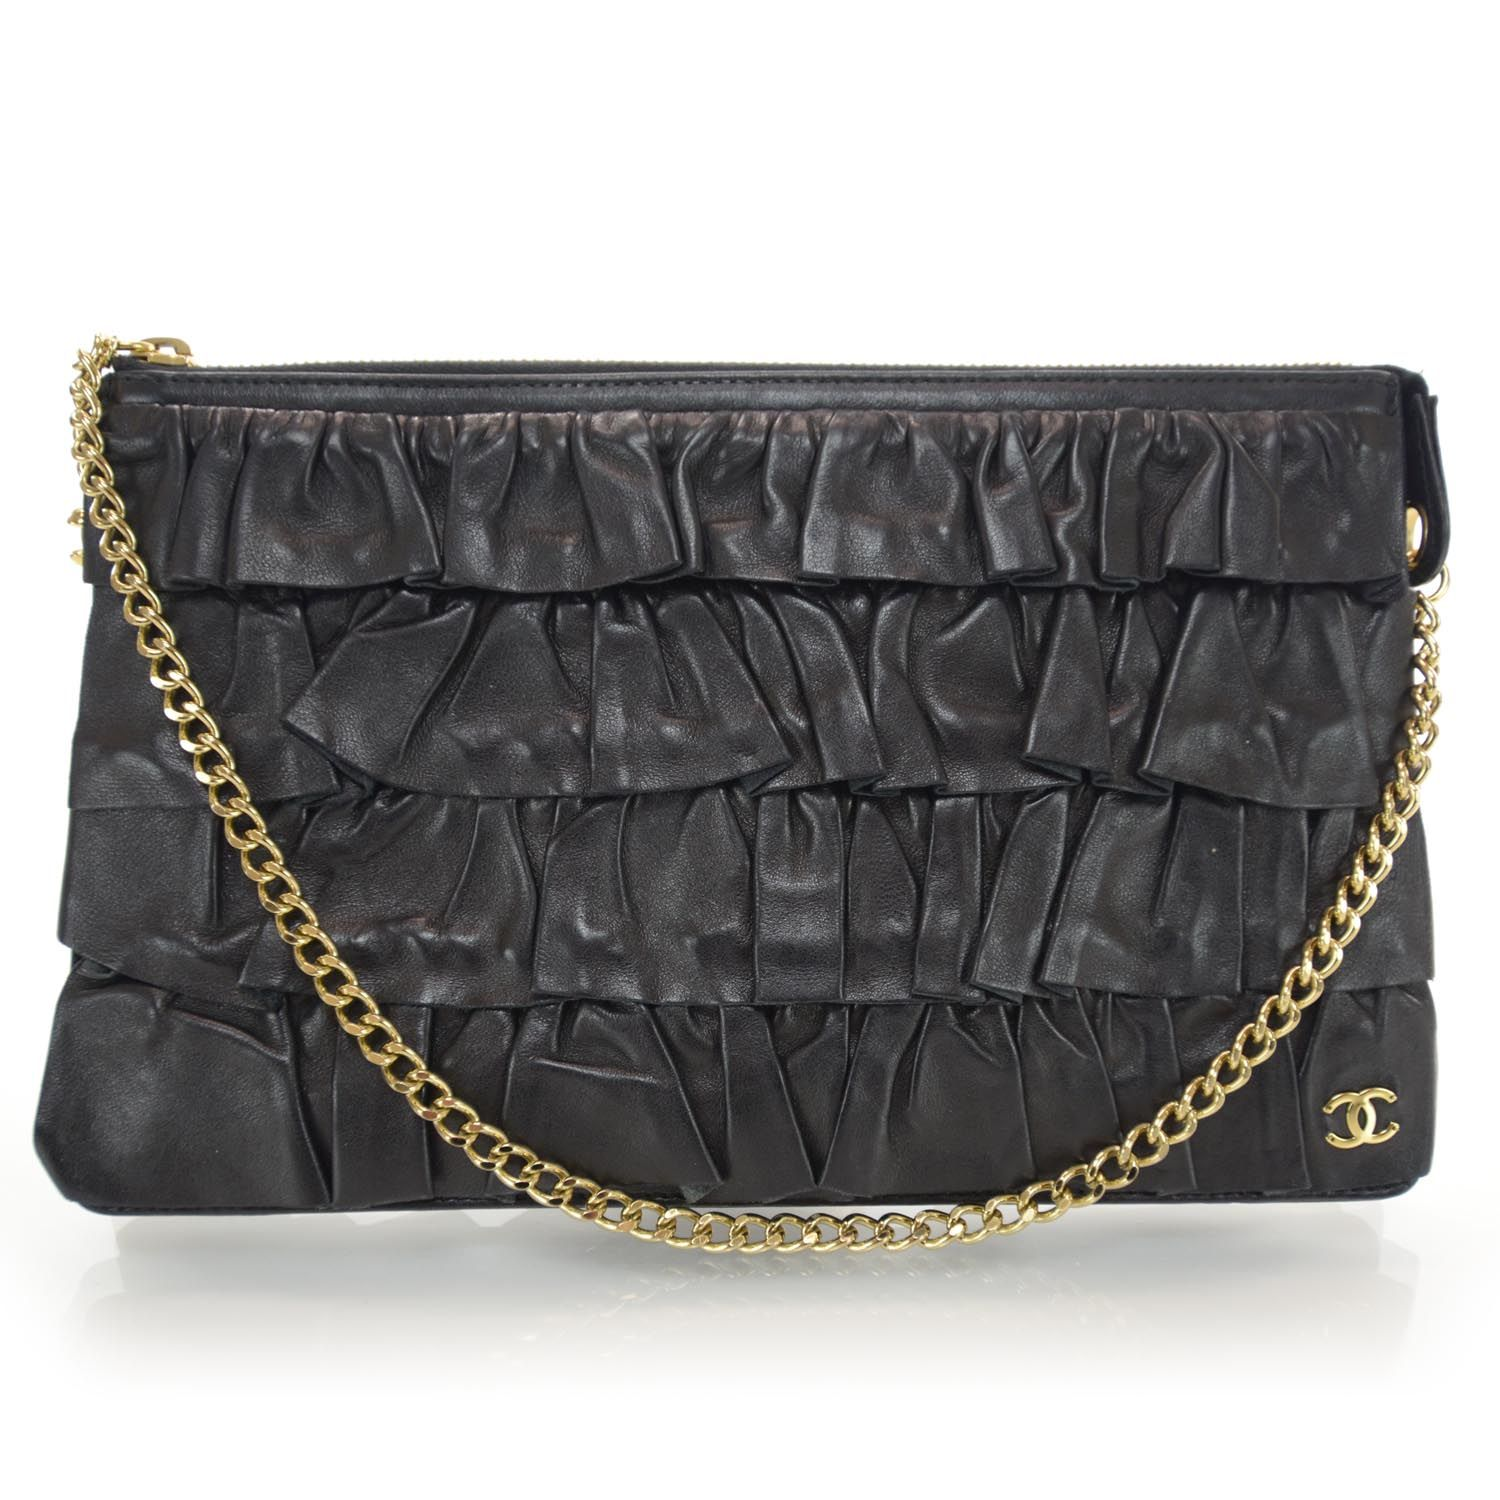 993fe4fa2de4 CHANEL Lambskin Ruffle Evening Bag Black